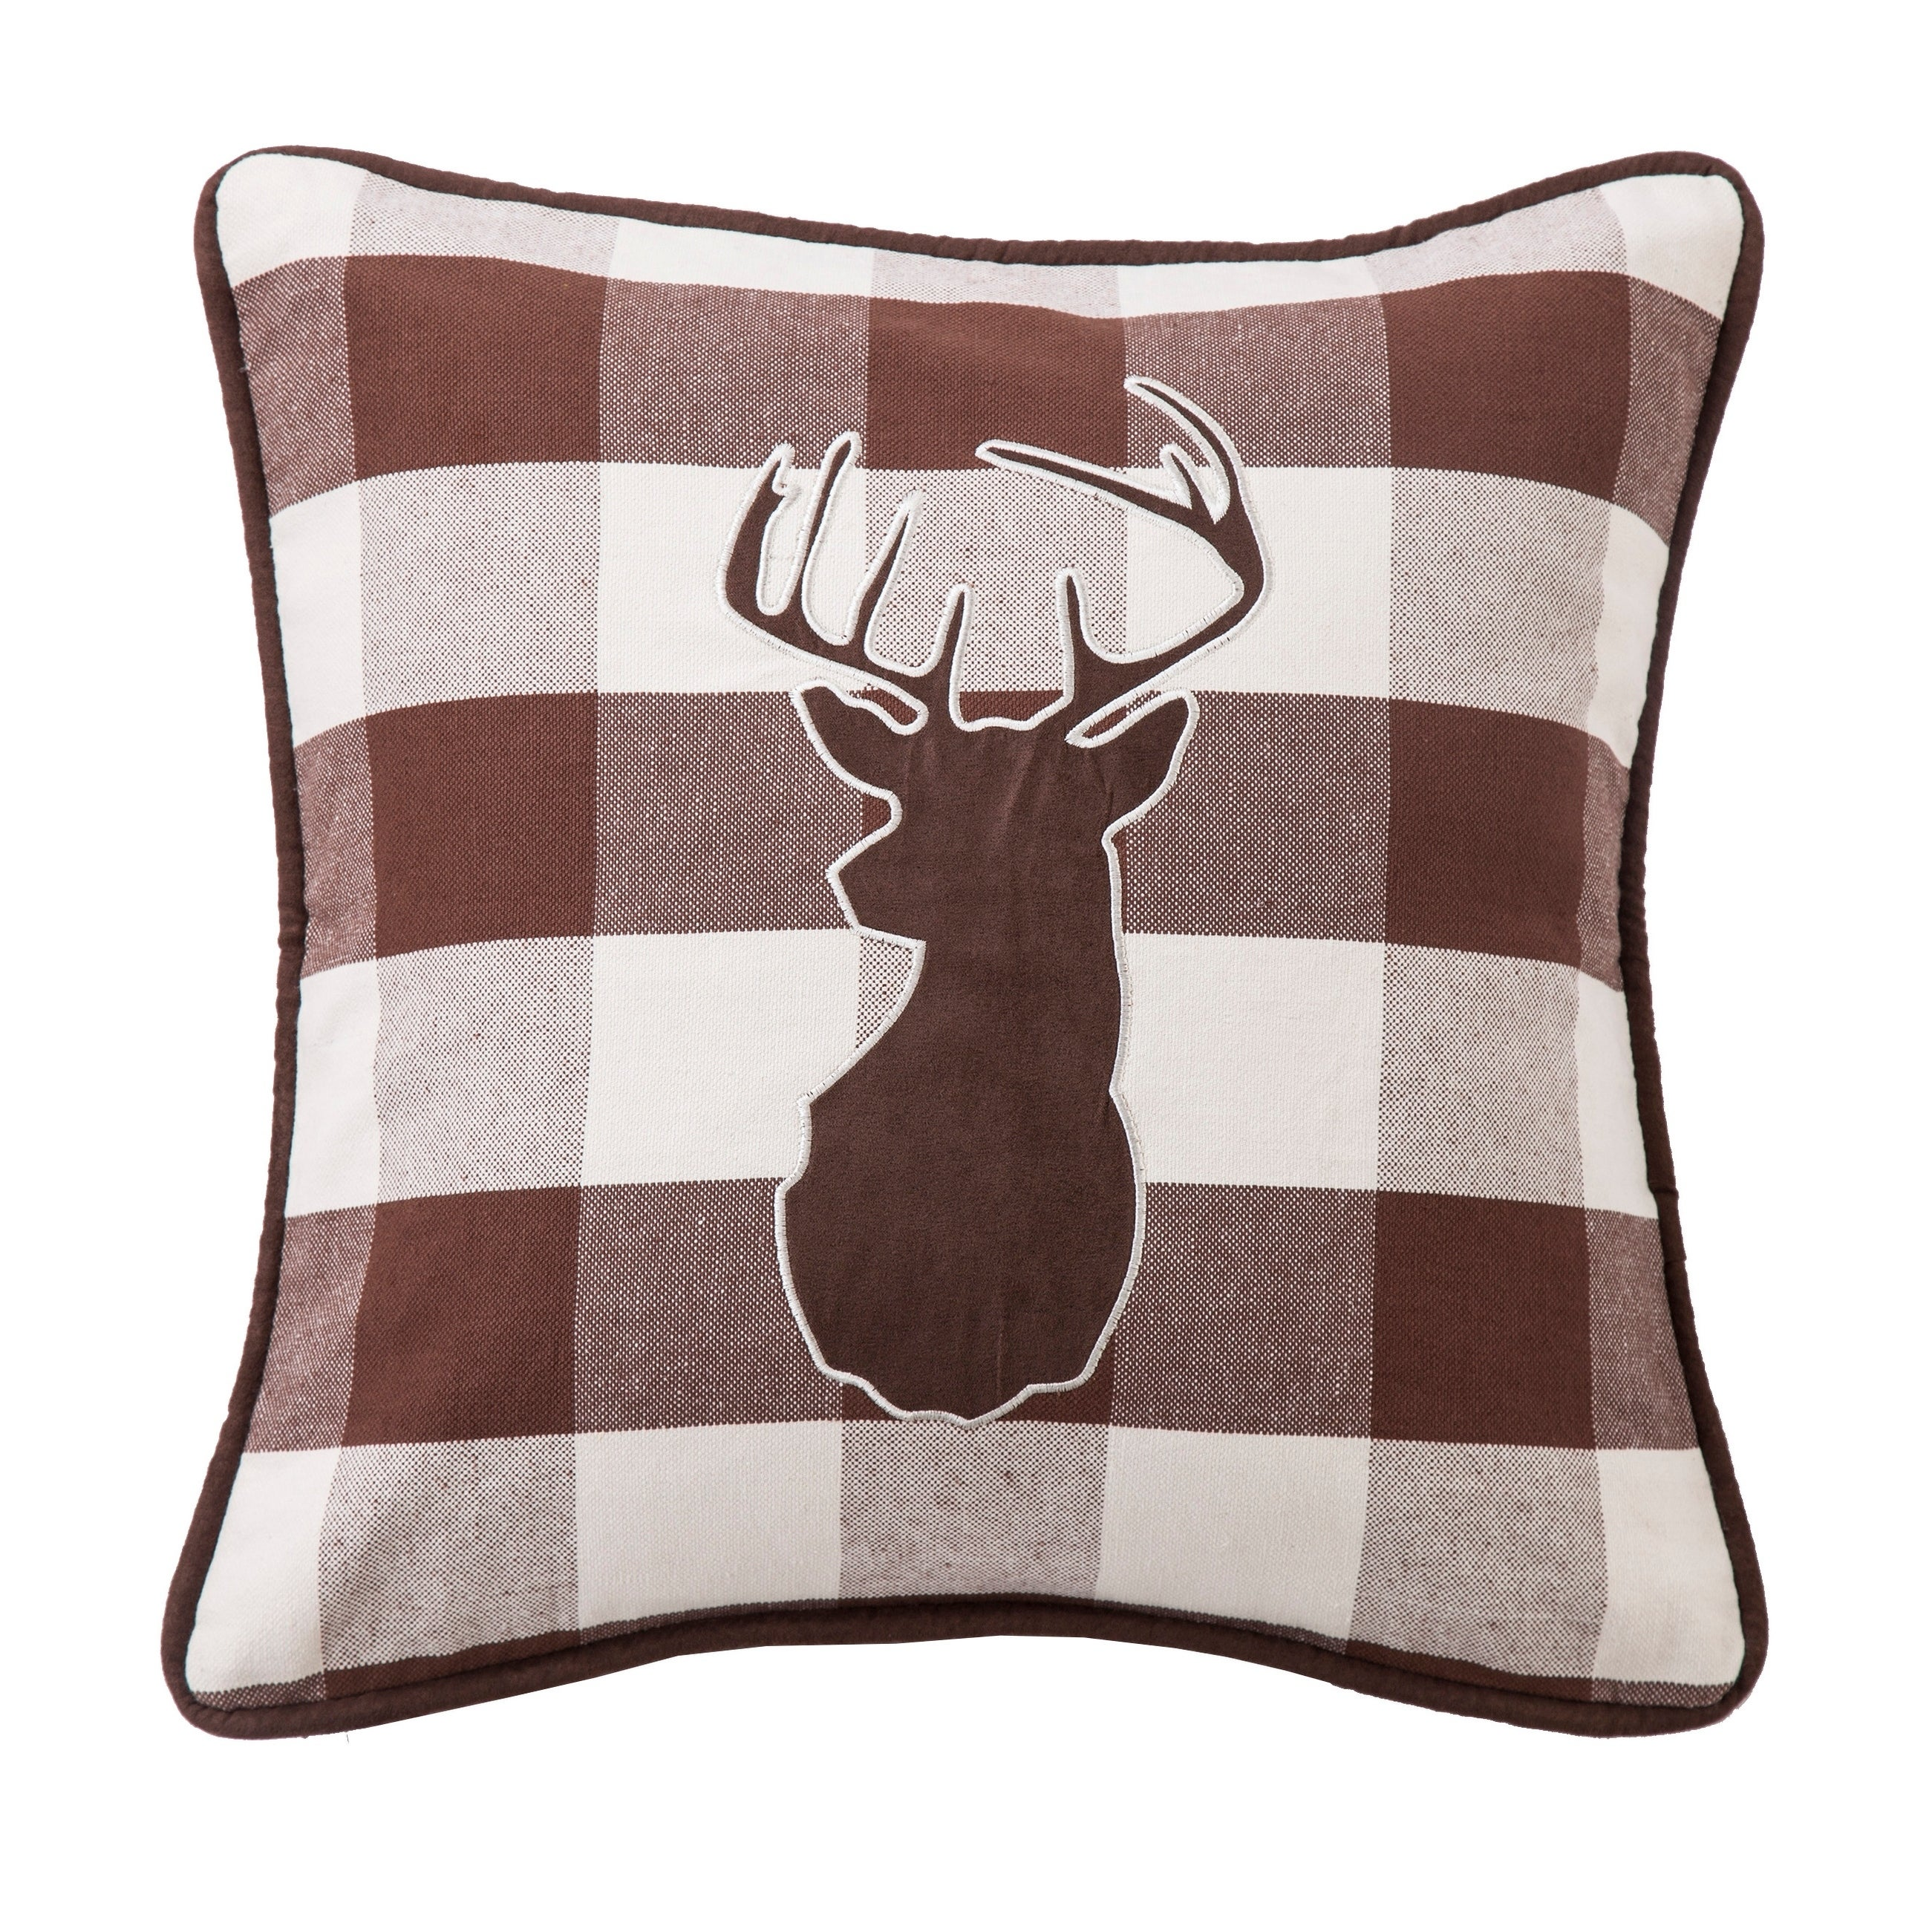 Superb Details About Deer Pillow Embroidered Rustic Sofa Bed Decor Cabin Lodge Man Cave Gift New Theyellowbook Wood Chair Design Ideas Theyellowbookinfo